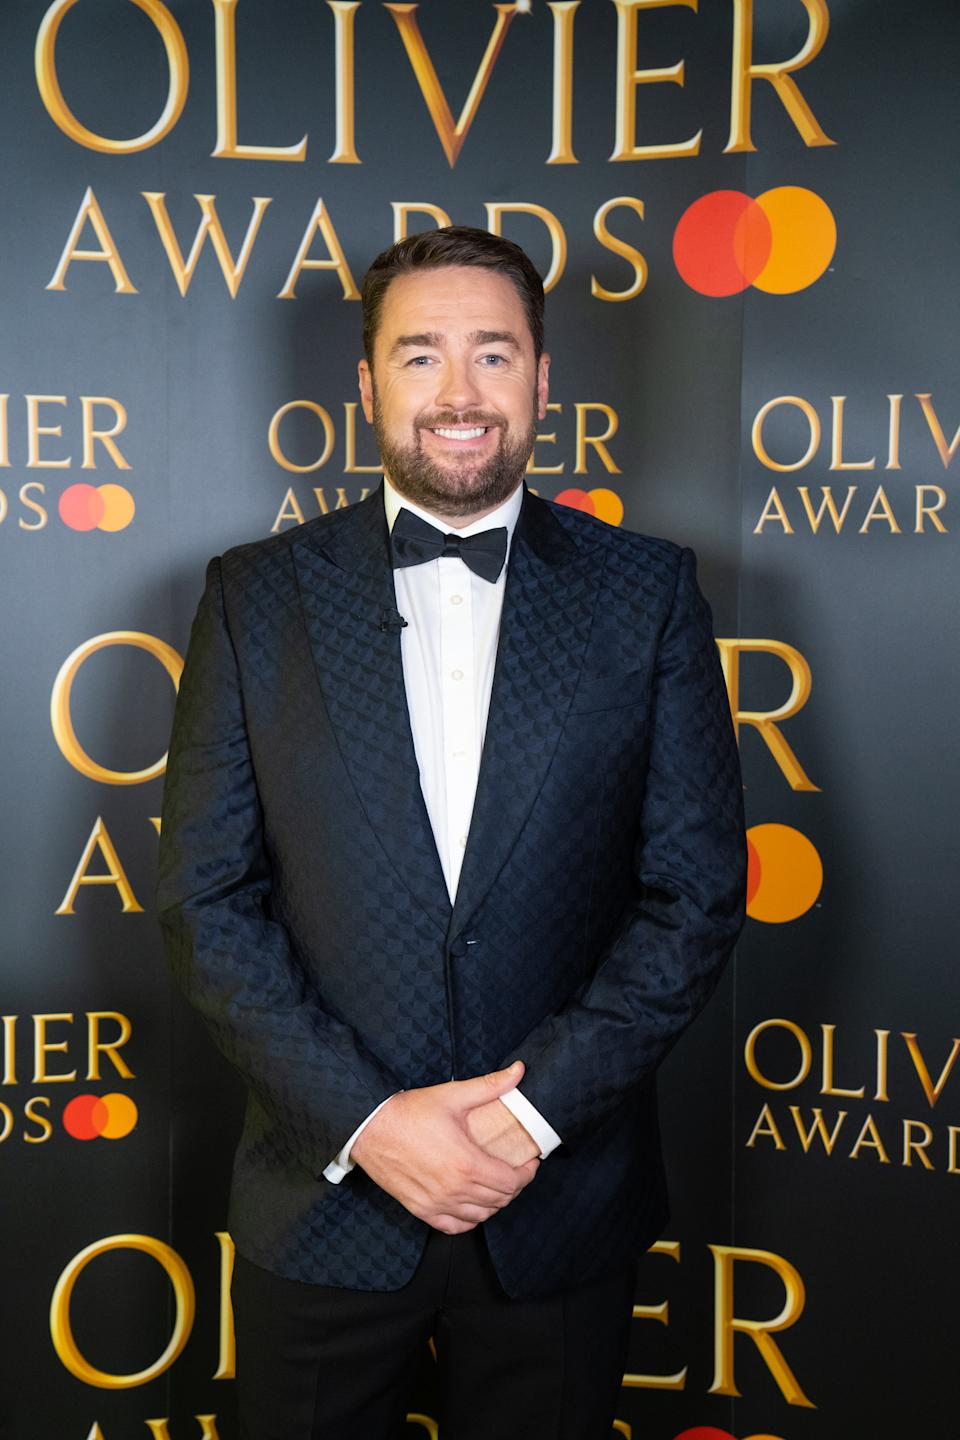 LONDON, ENGLAND - OCTOBER 20: Jason Manford poses during the Olivier awards at the London Palladium on October 20, 2020 in London, England. (Photo by Society of London Theatre/Getty Images)